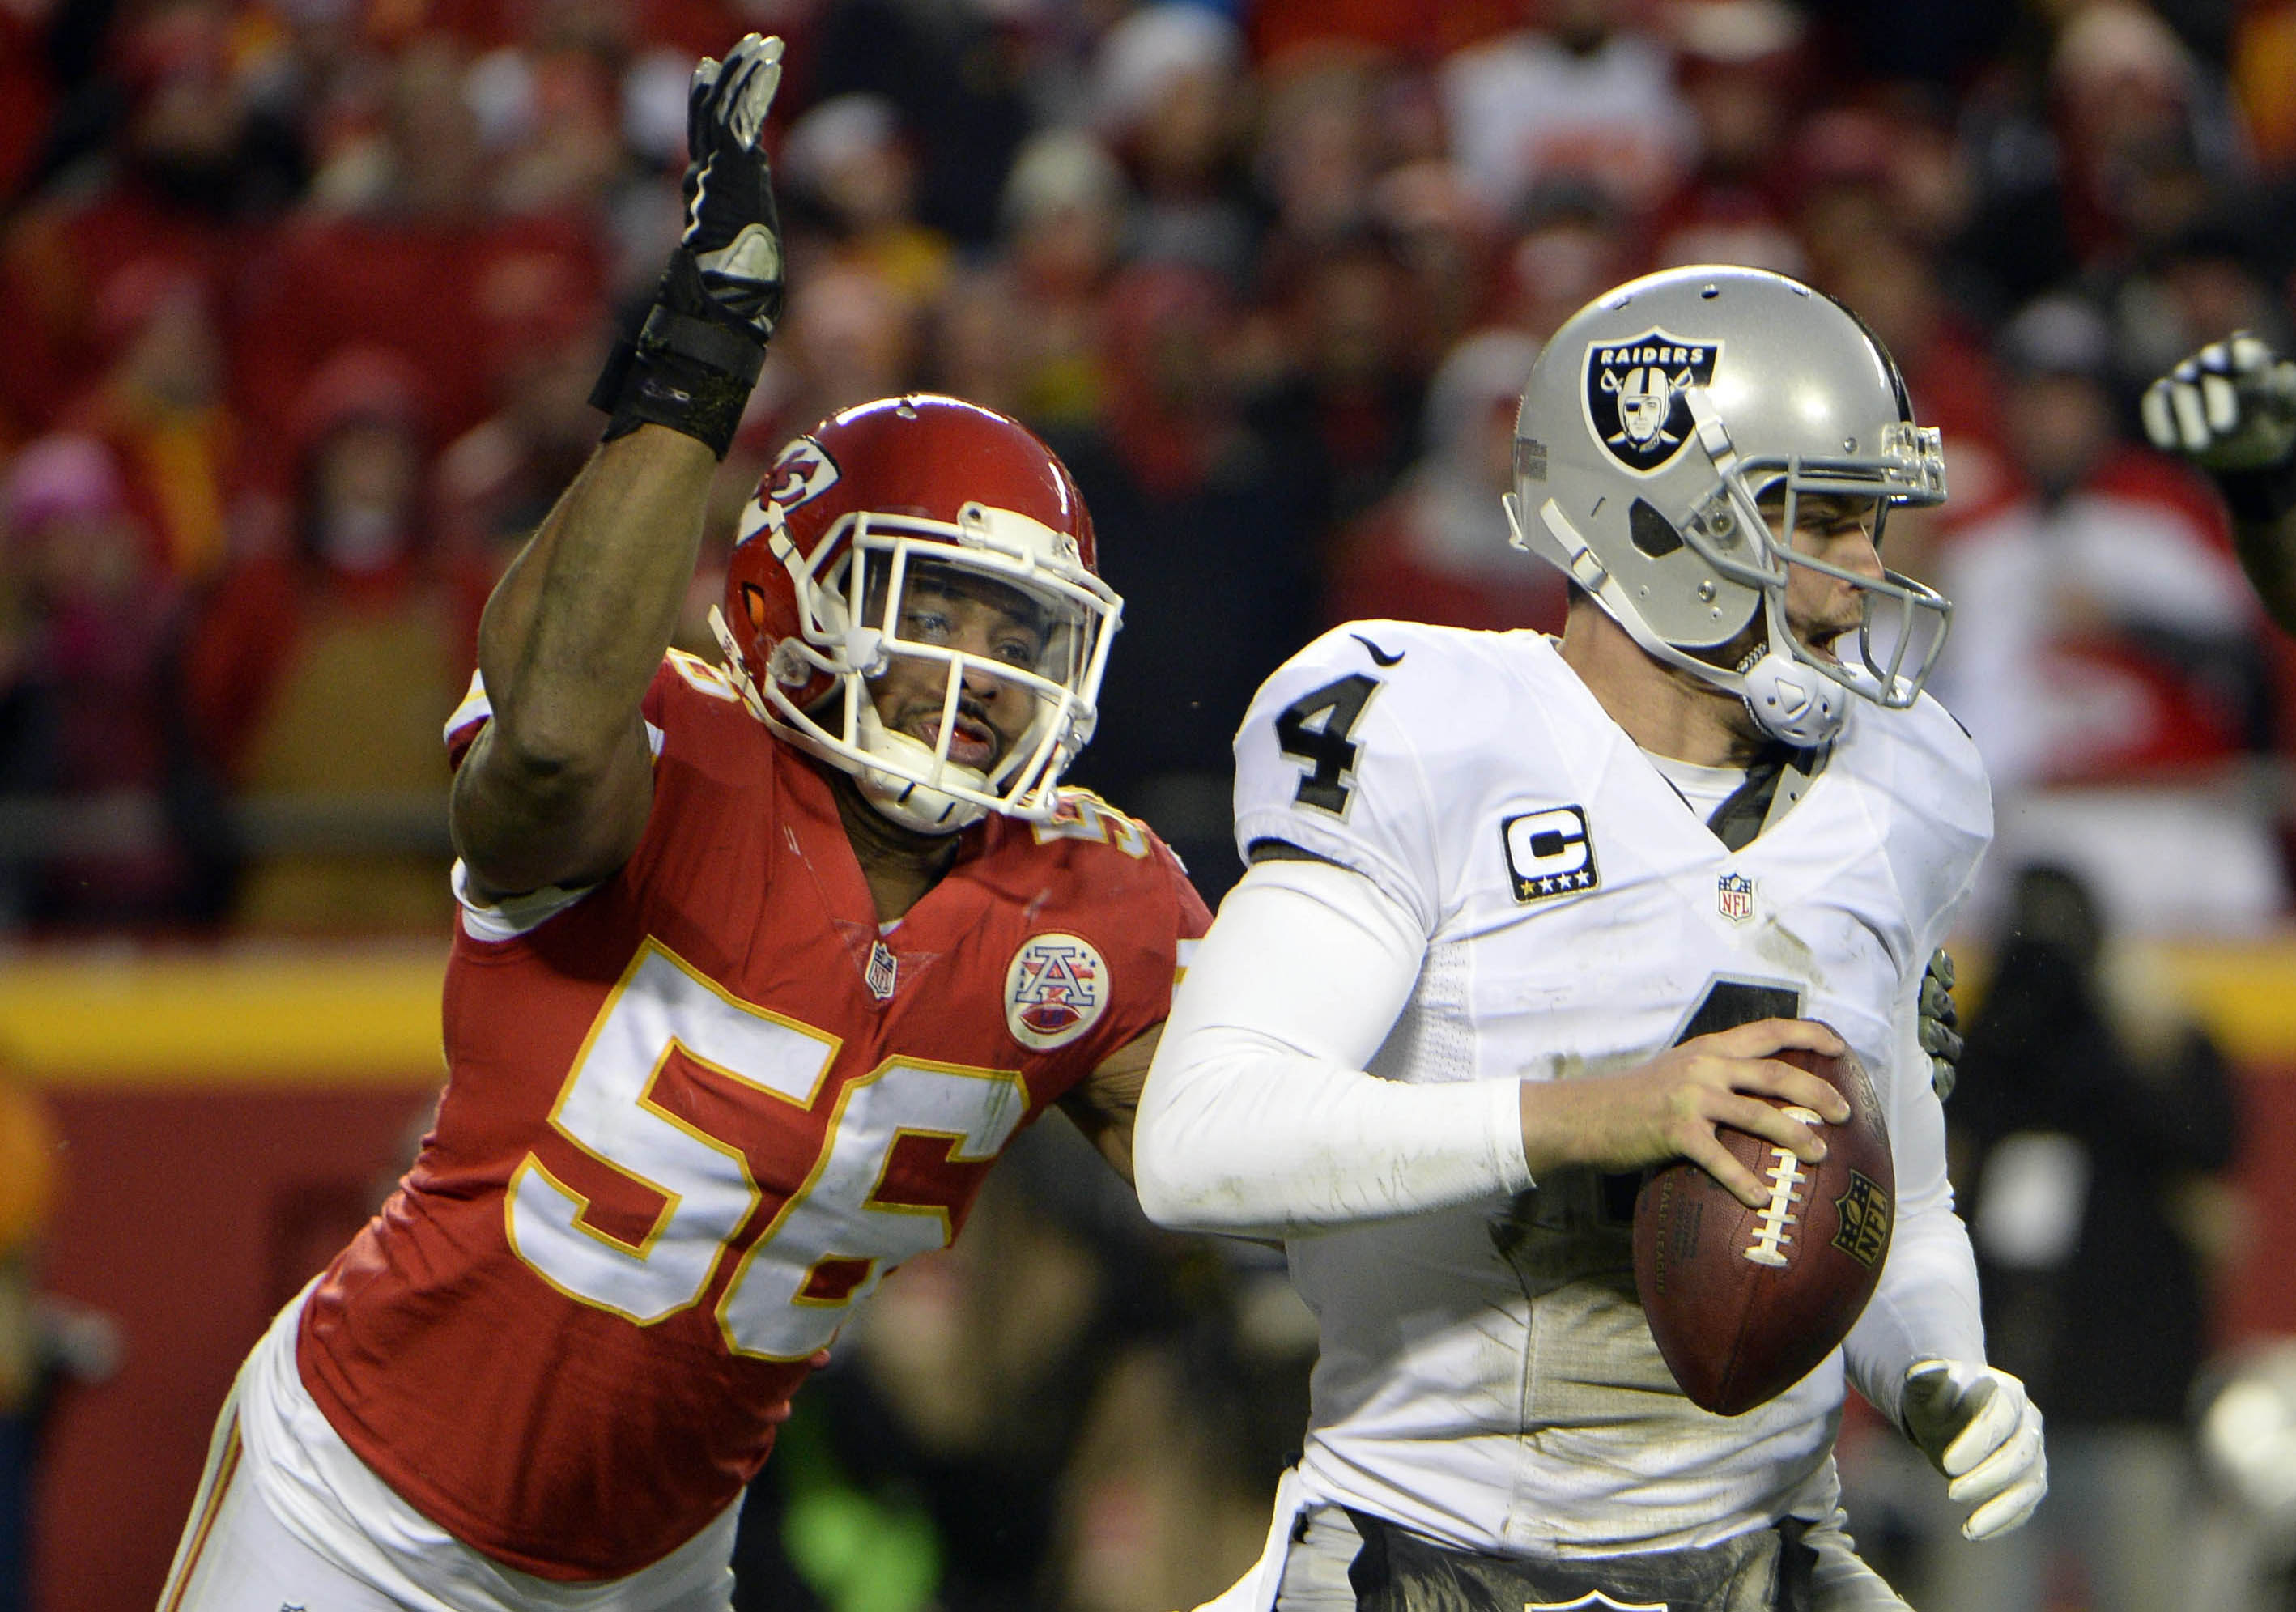 9036372-nfl-oakland-raiders-at-kansas-city-chiefs